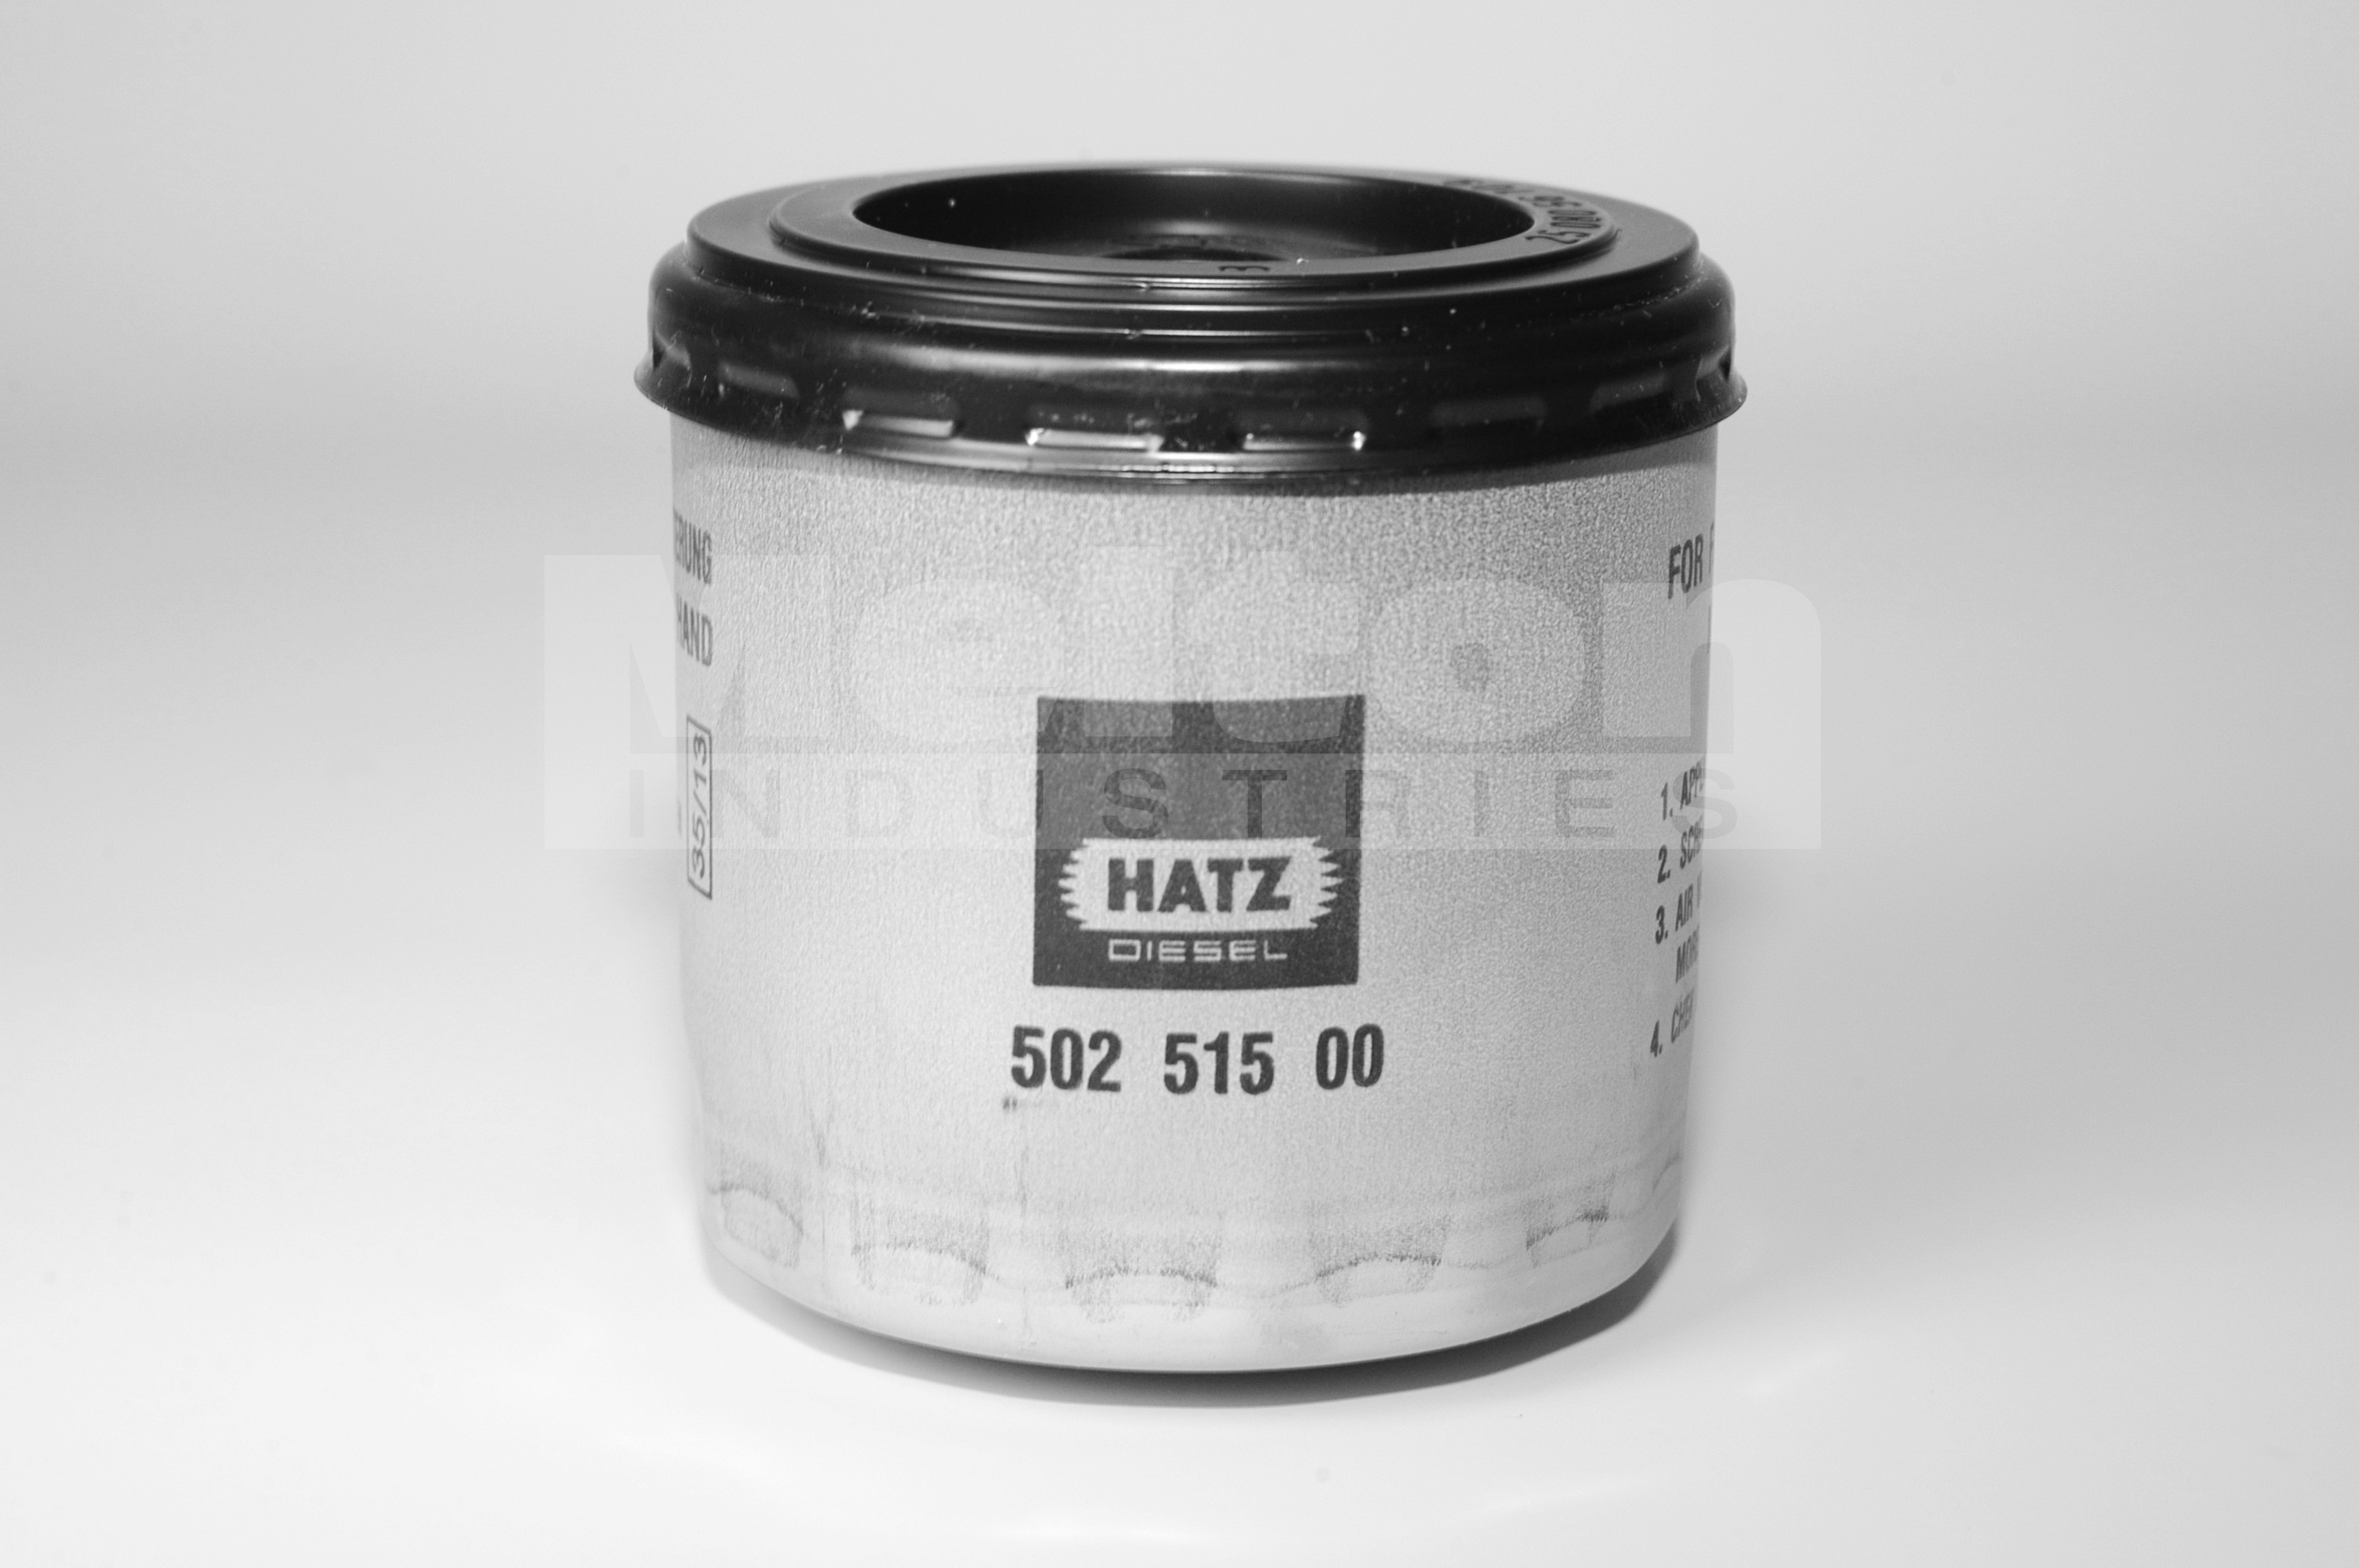 Hatz 1b20 Diesel Engine Electric Start Melton Industries Wiring Diagram Fuel Filter Element 50251501